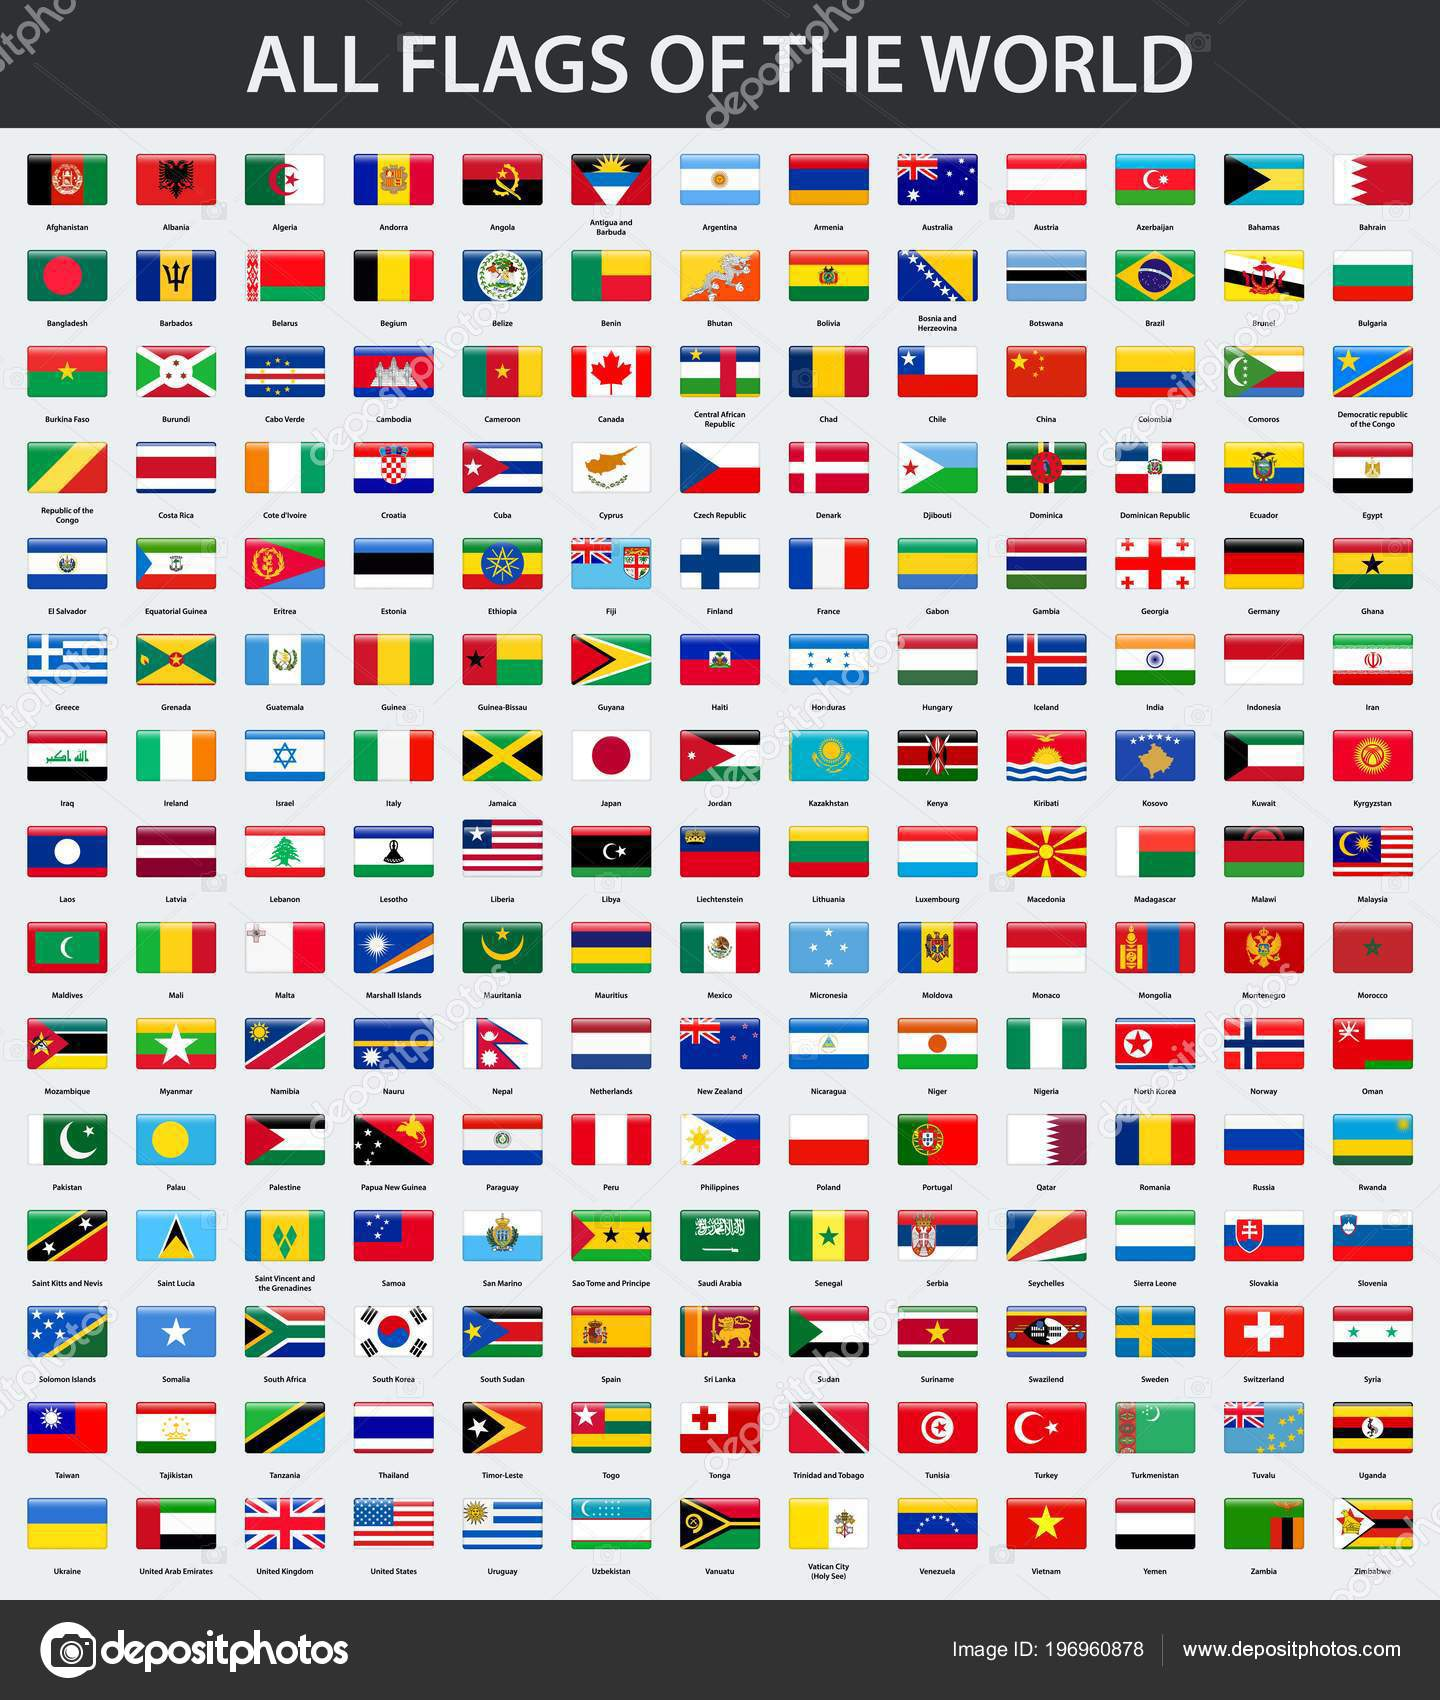 Flags of the world in alphabetical order | All Flags World